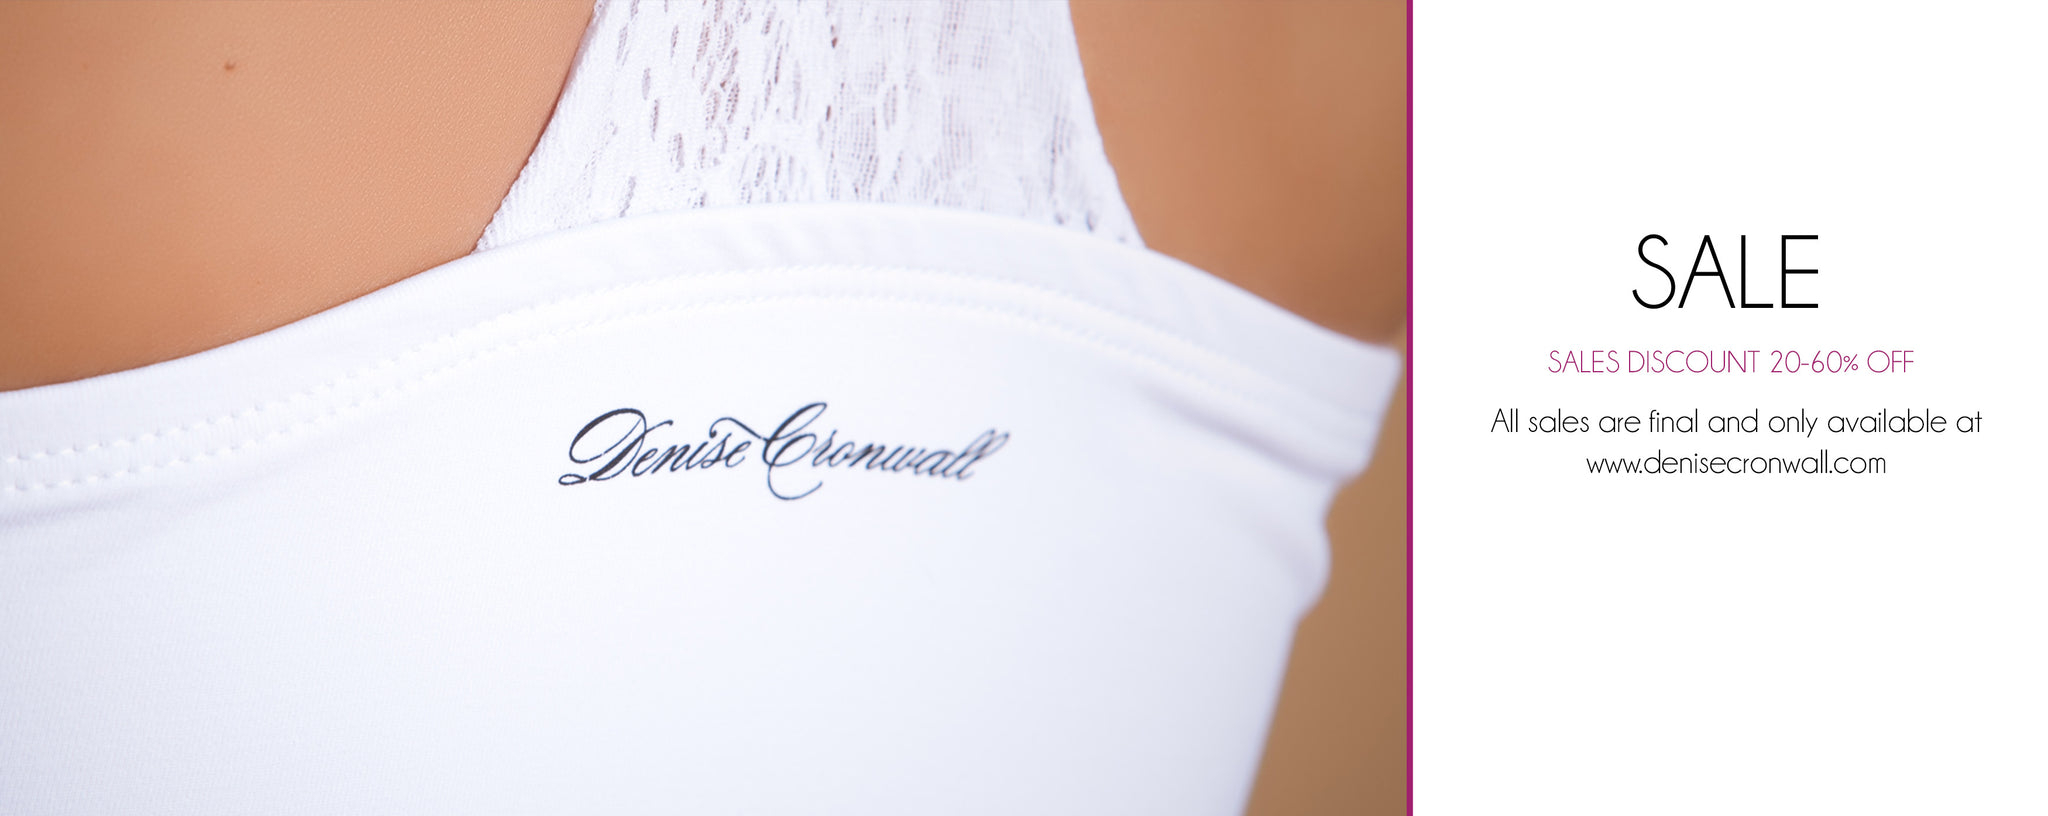 Denise Cronwall Activewear | Sales Discount 20-60% Off